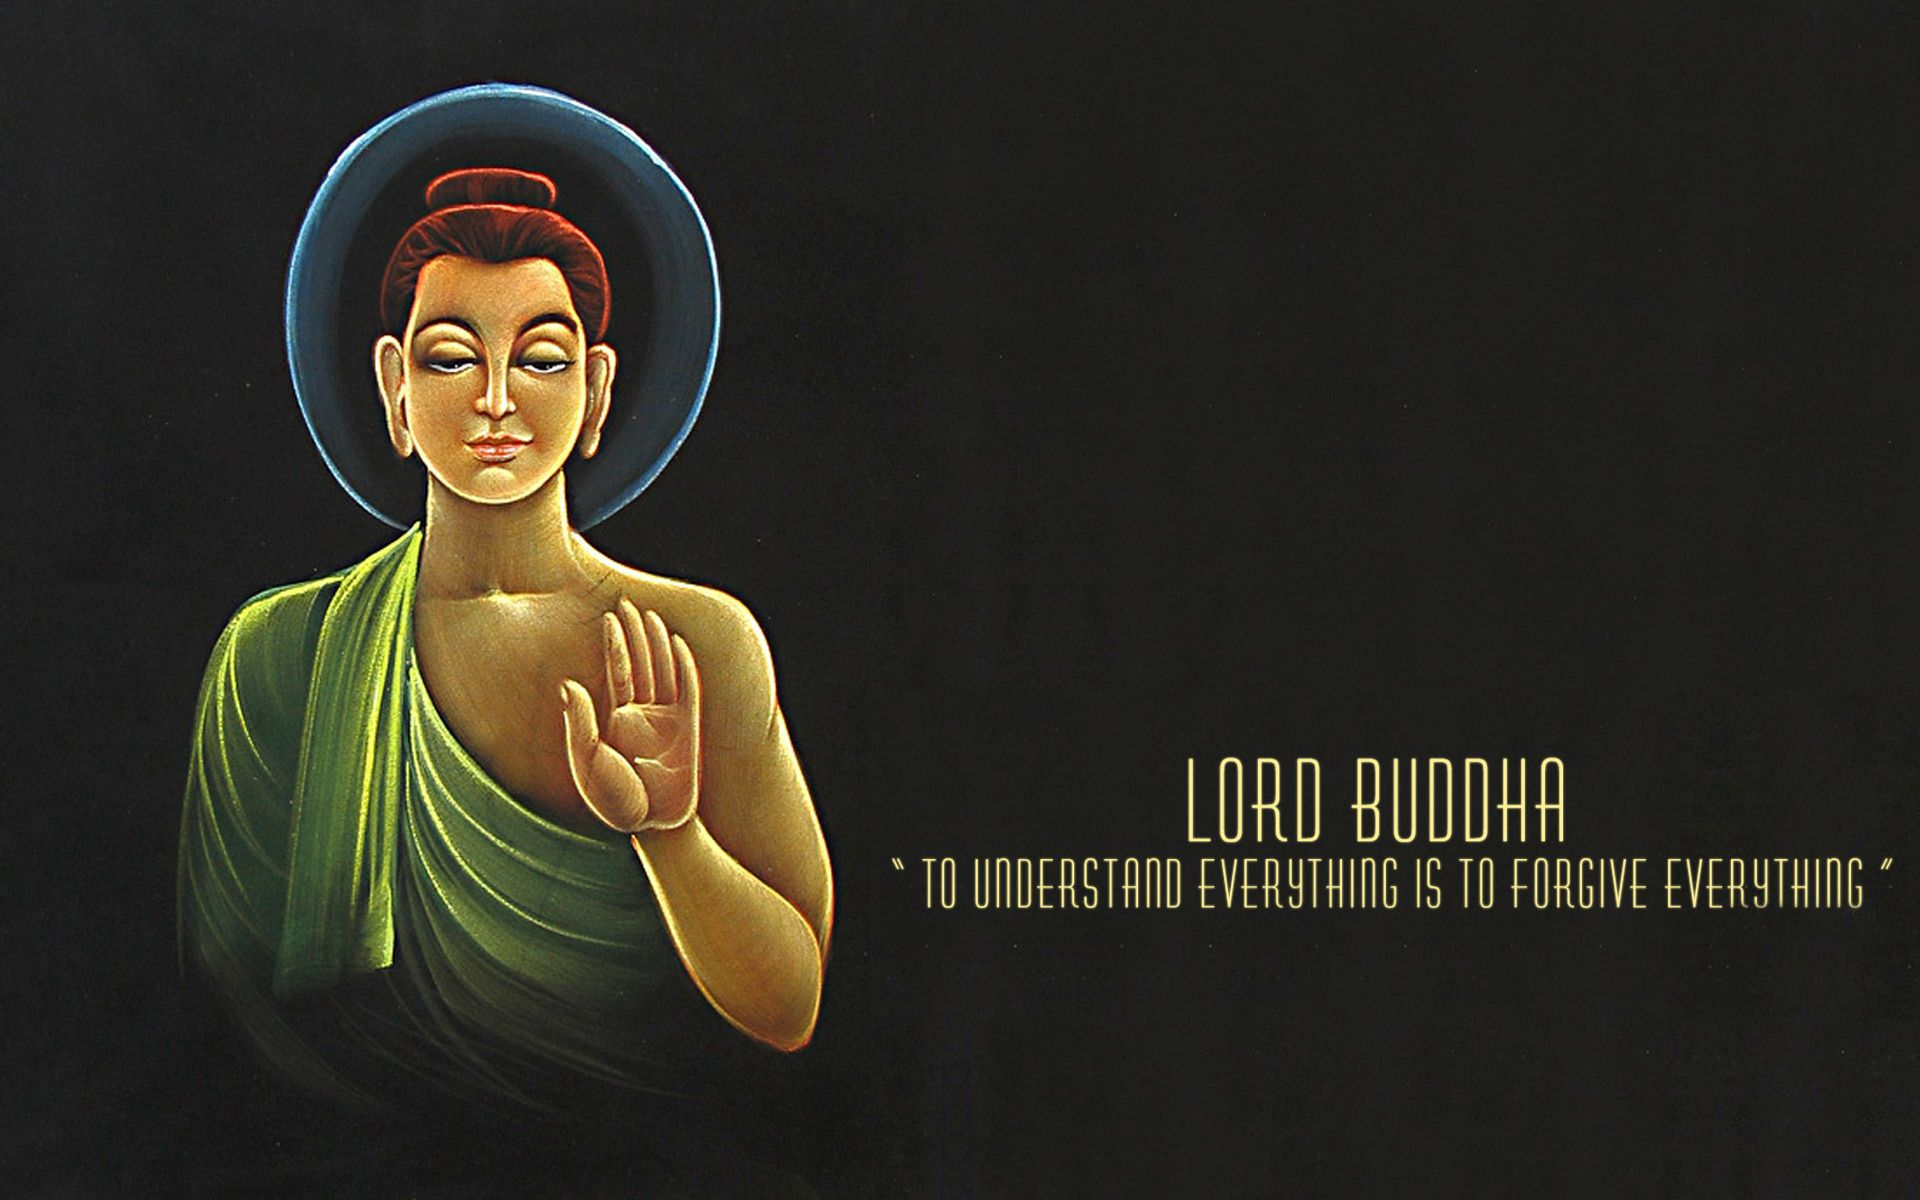 Inspirational Desktop Wallpaper Buddha In 2020 Buddha Quote Best Buddha Quotes Buddha Thoughts